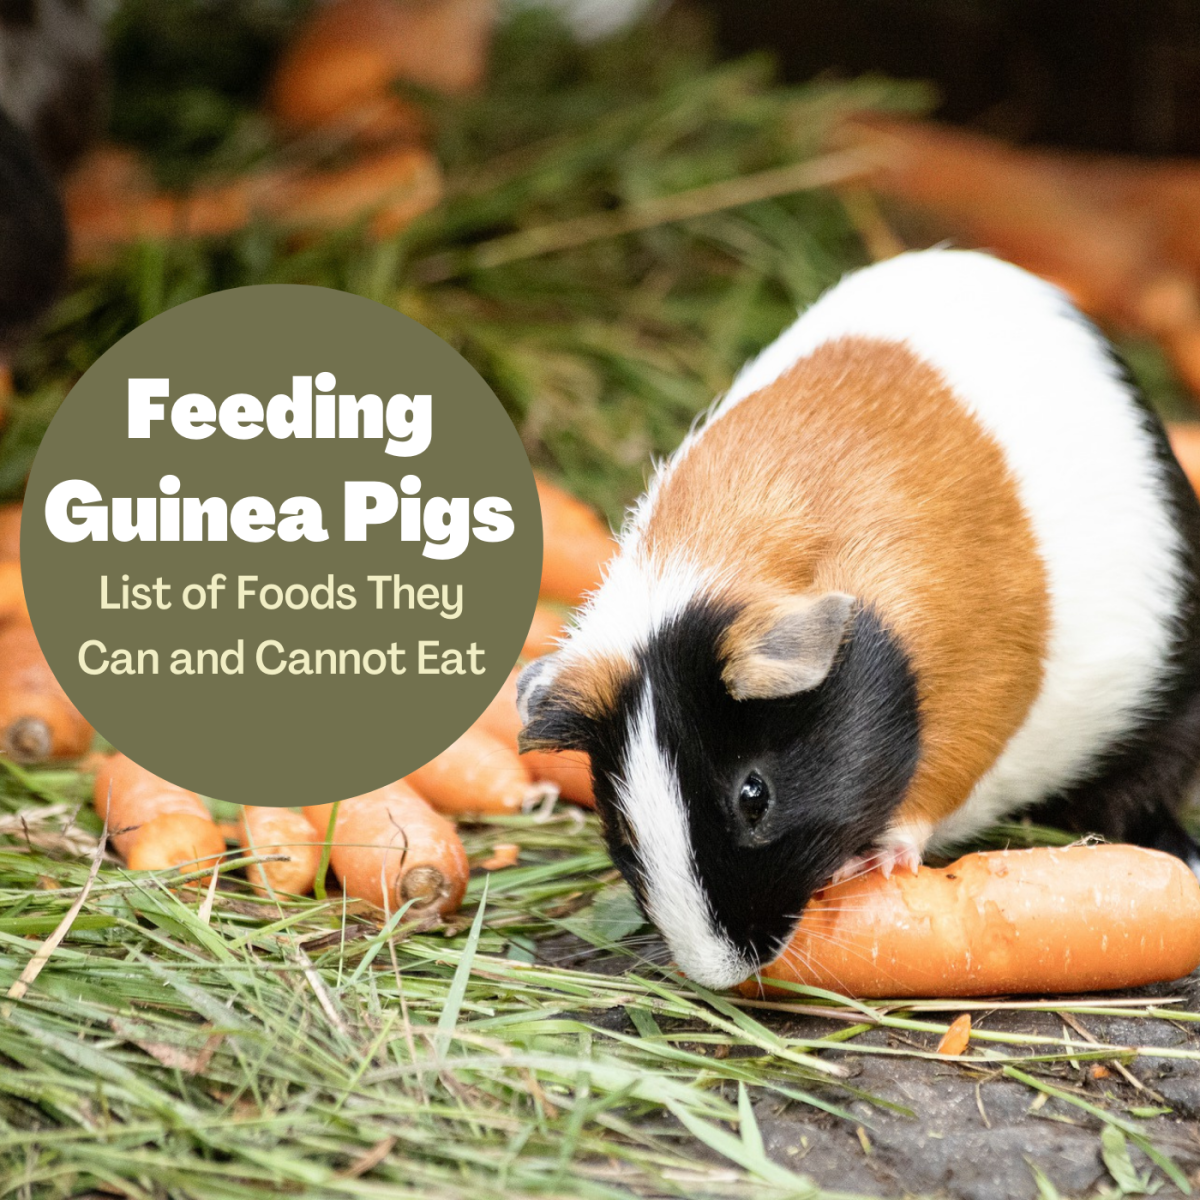 Guinea pigs can eat carrots, among many other fresh veggies. Learn more about what you can and cannot feed your pet.